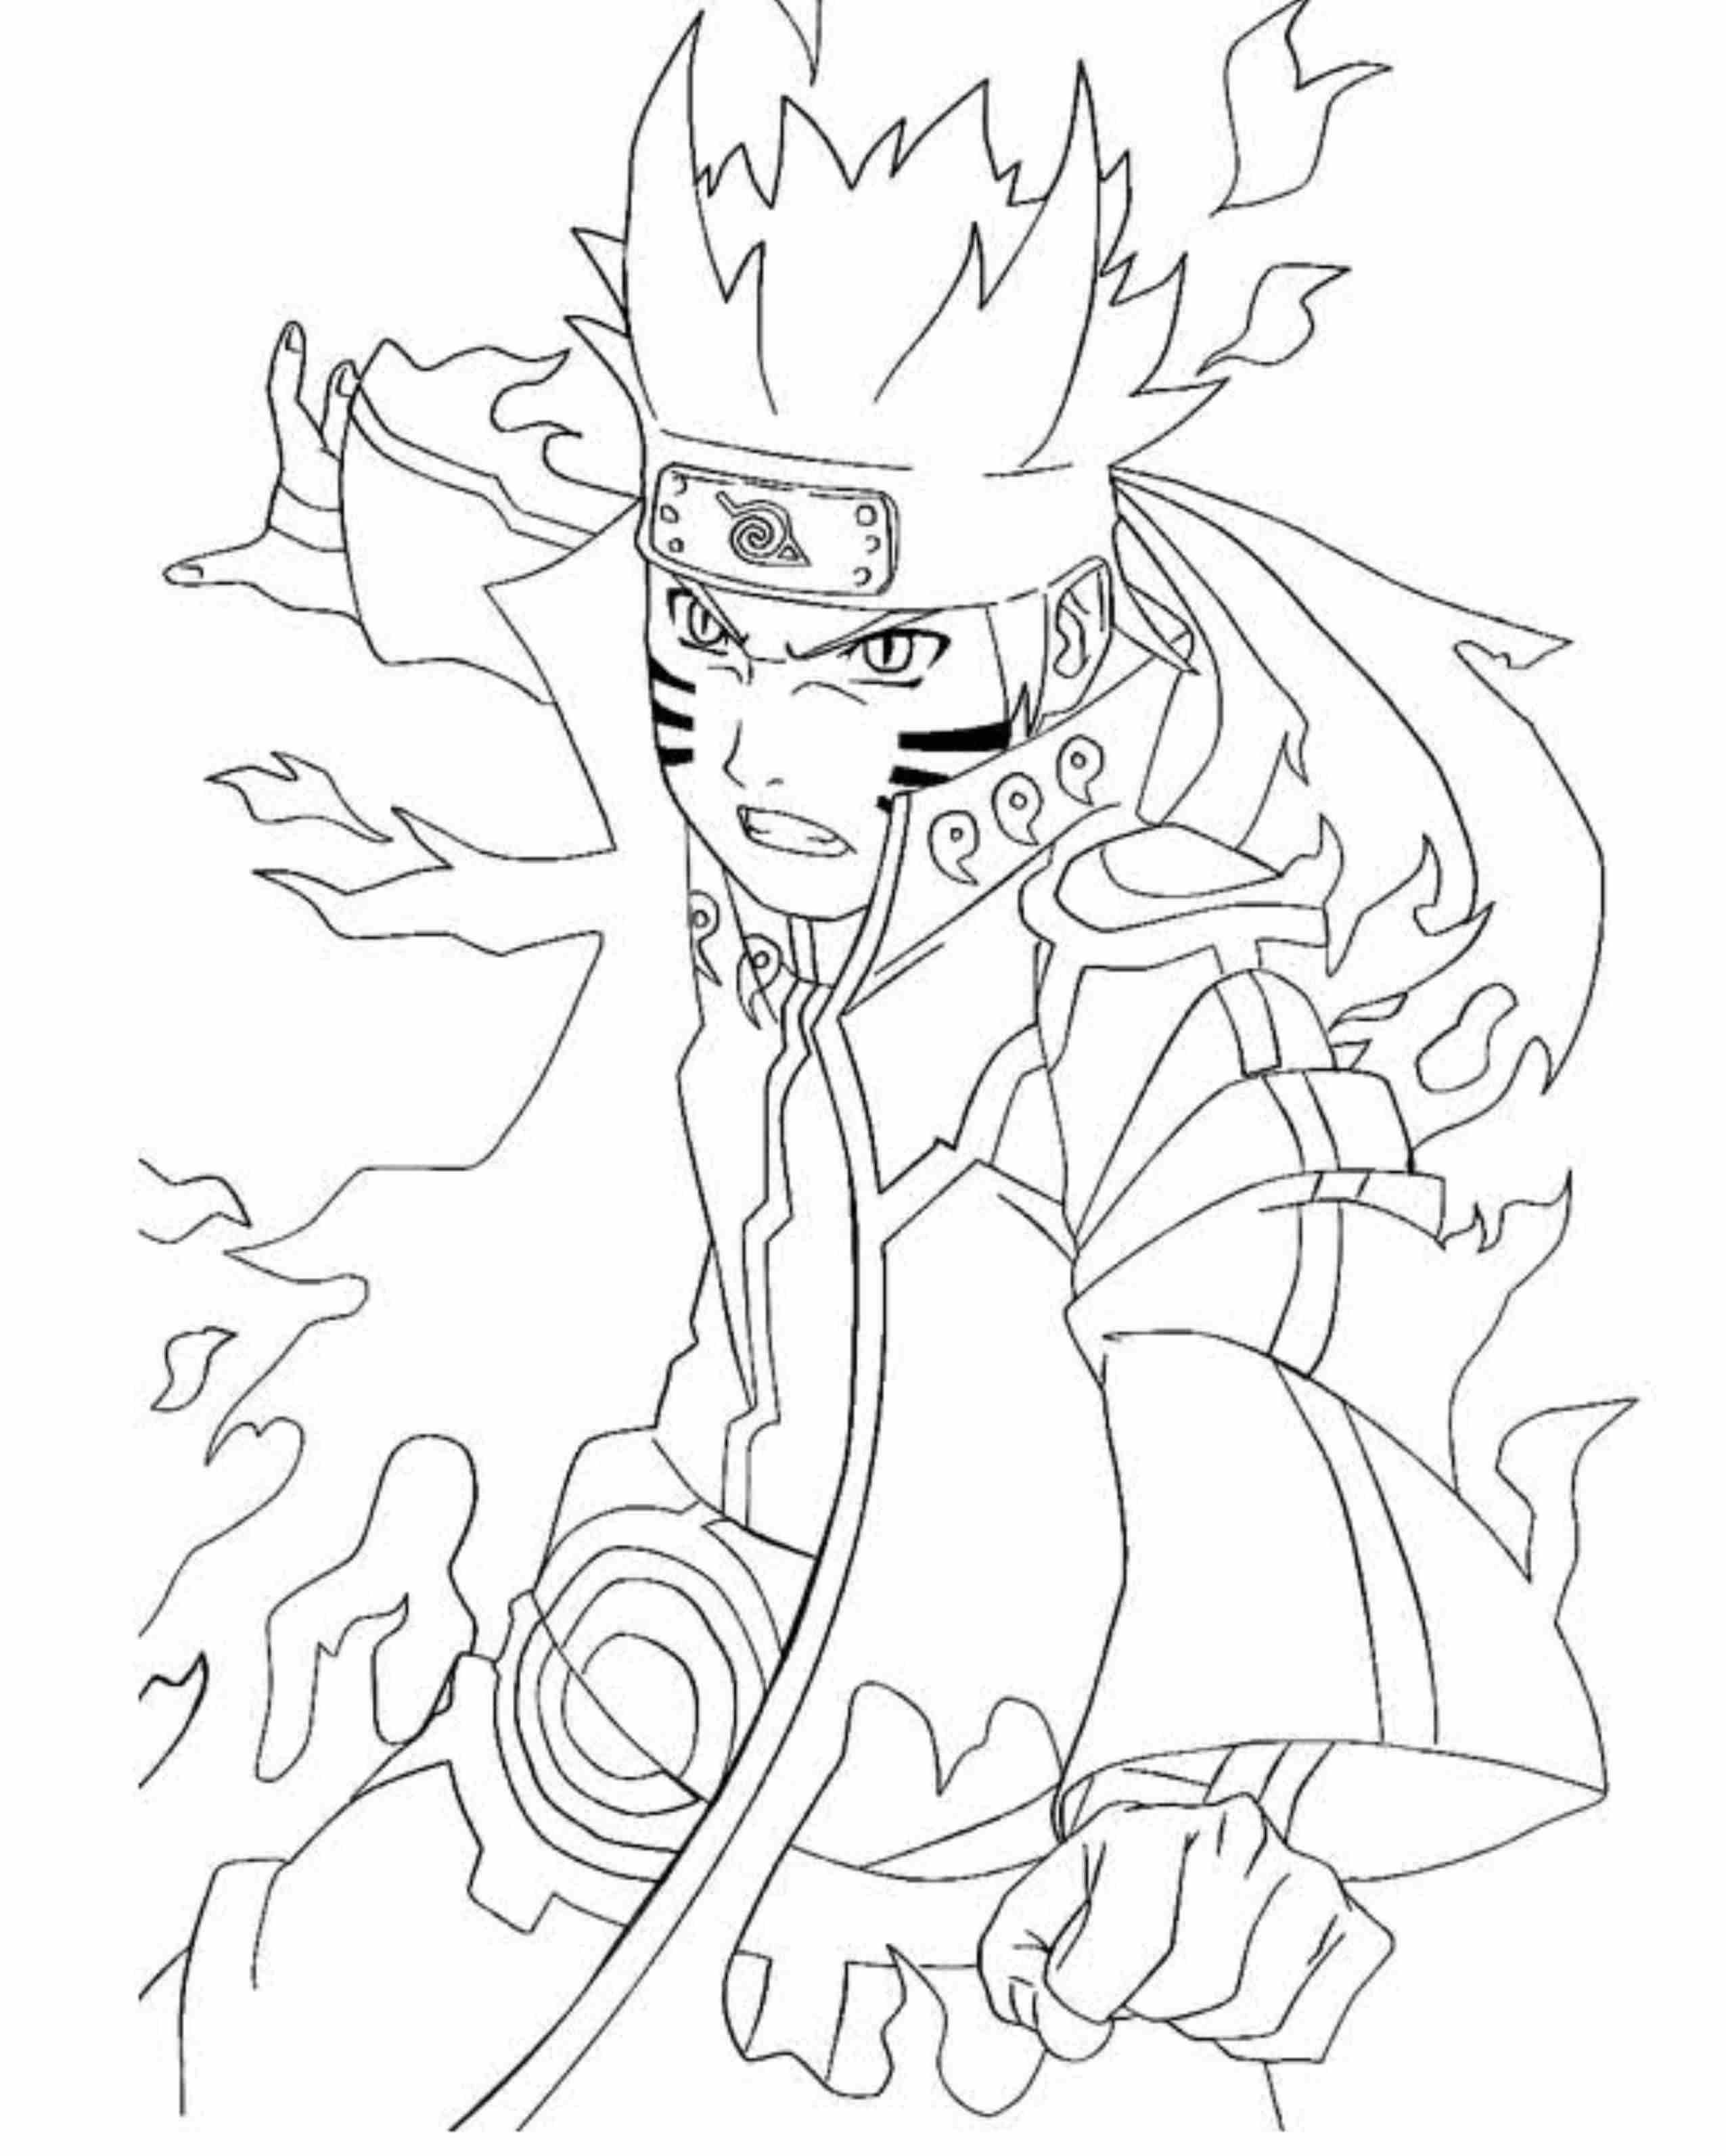 Coloring Pages Of Naruto Shippuden Characters Coloring Pages